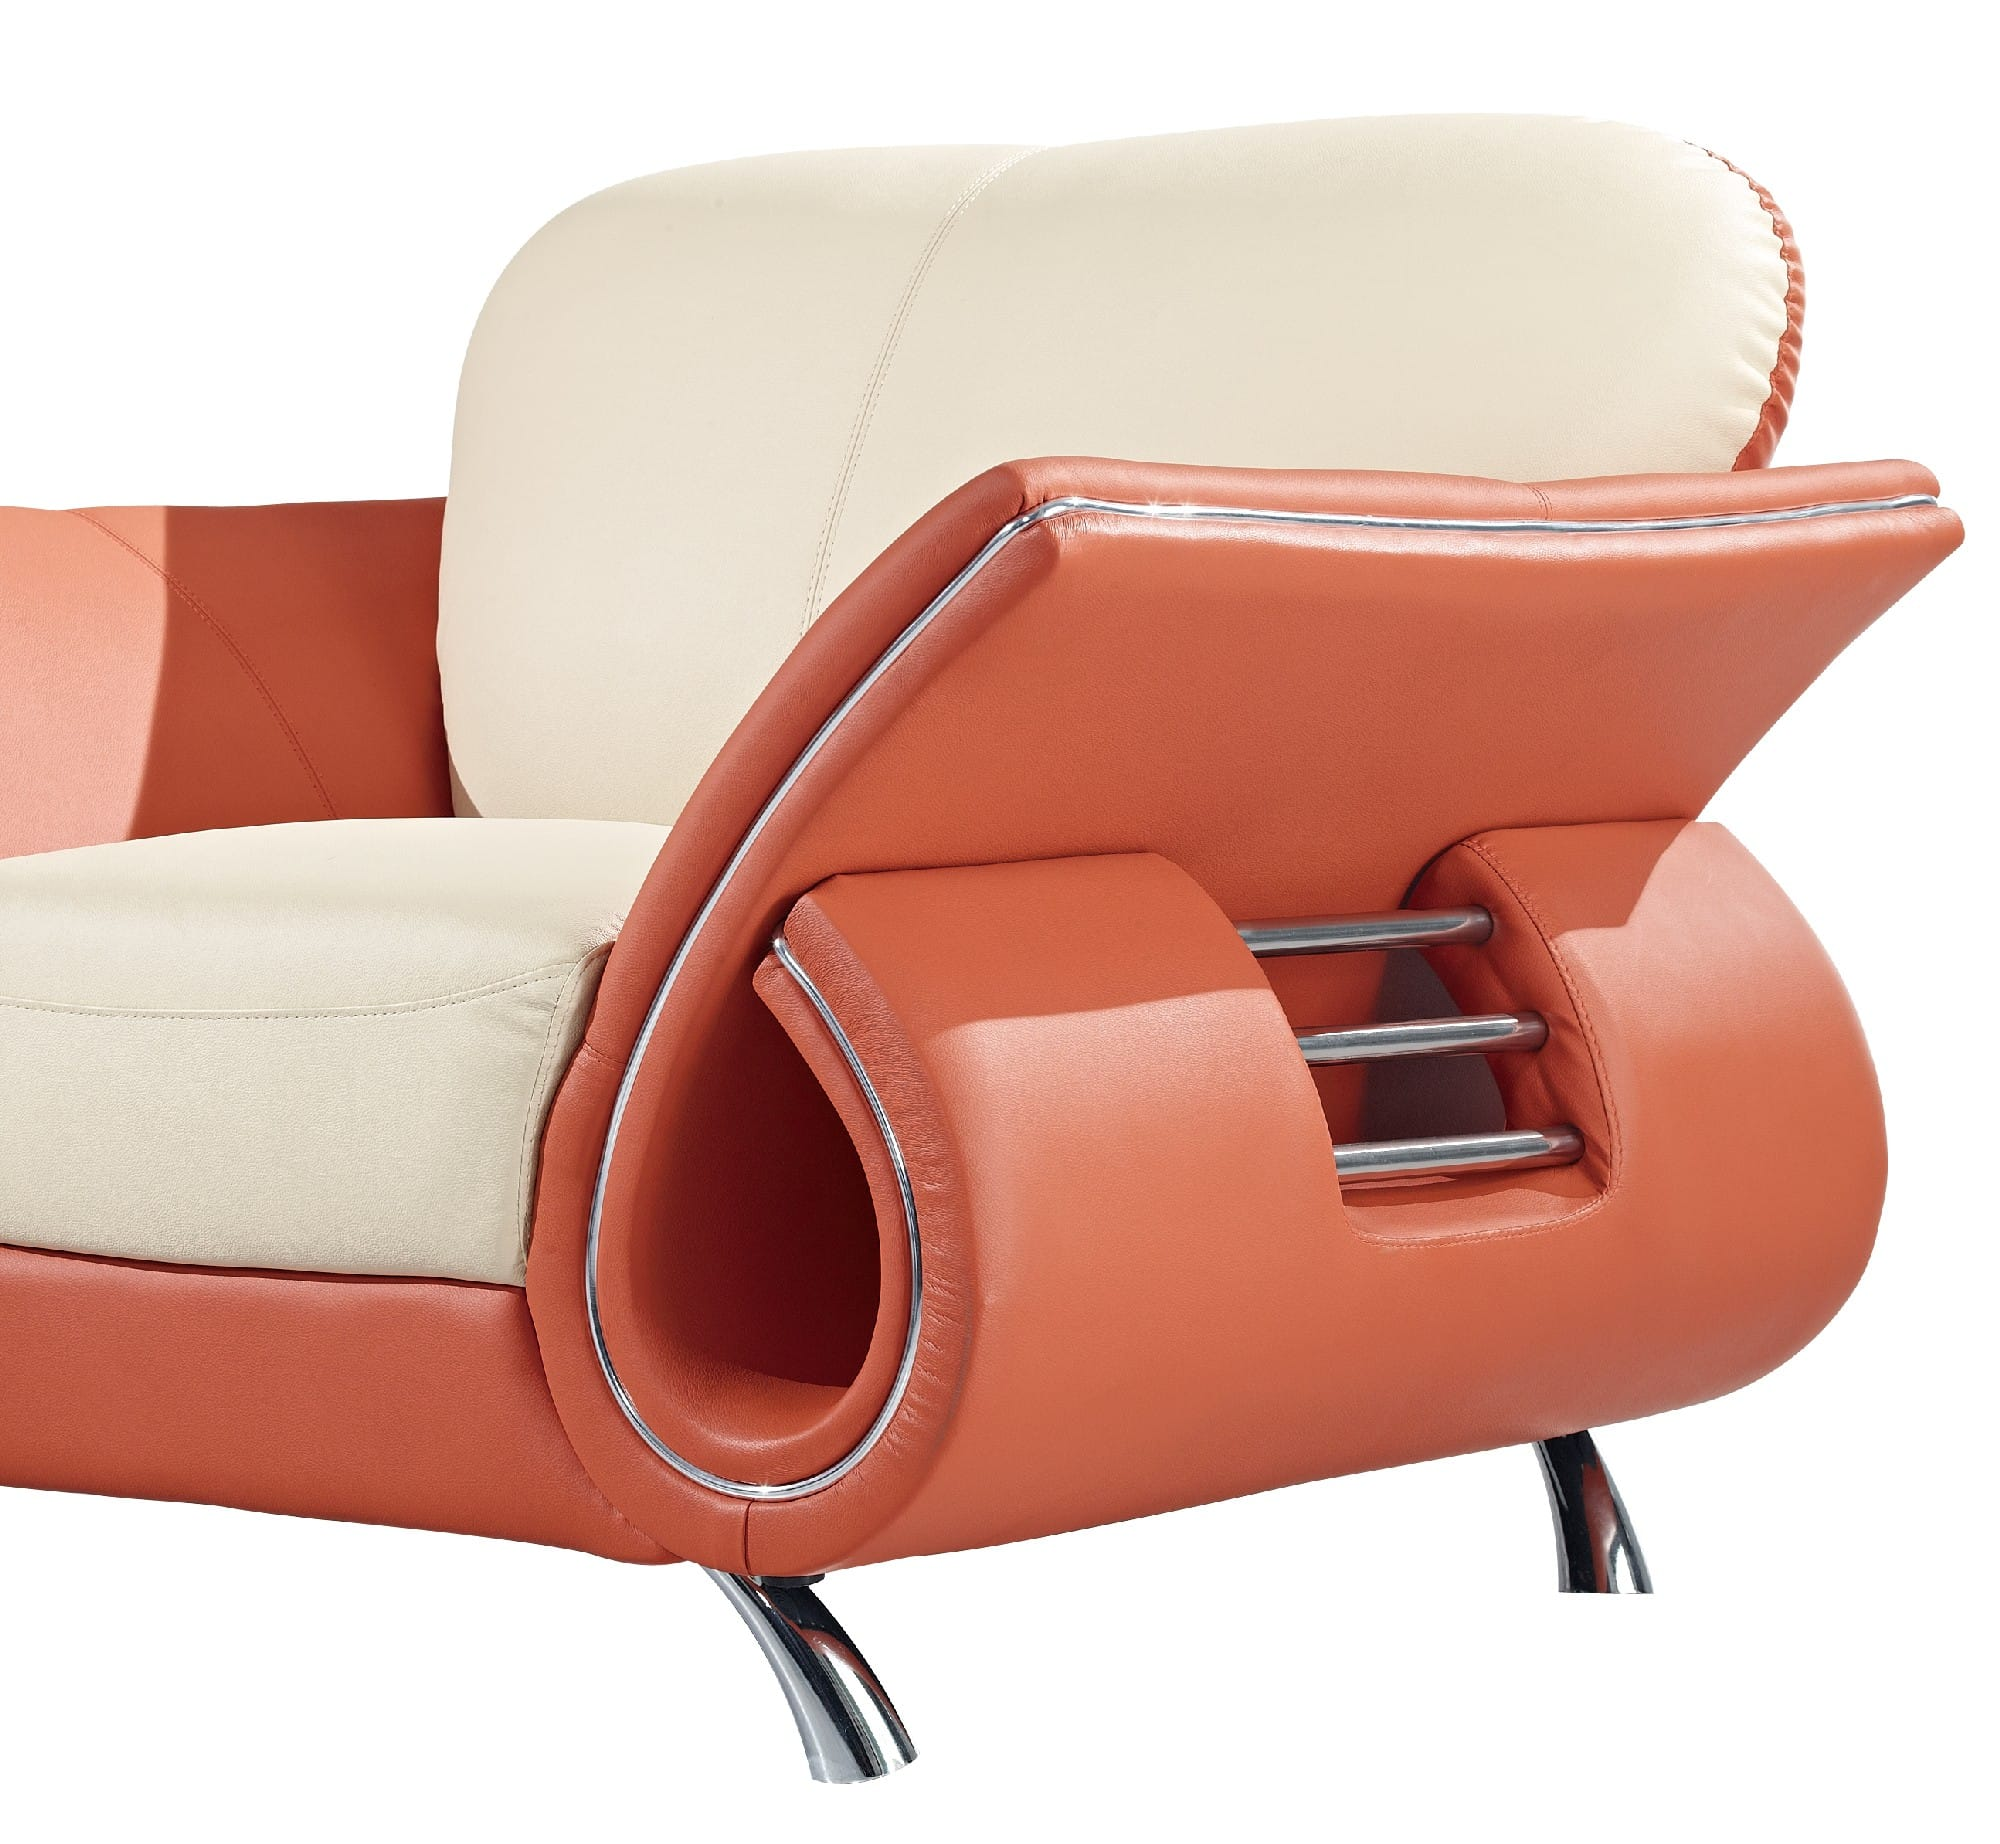 U559 Beige Orange Leather Loveseat By Global Furniture